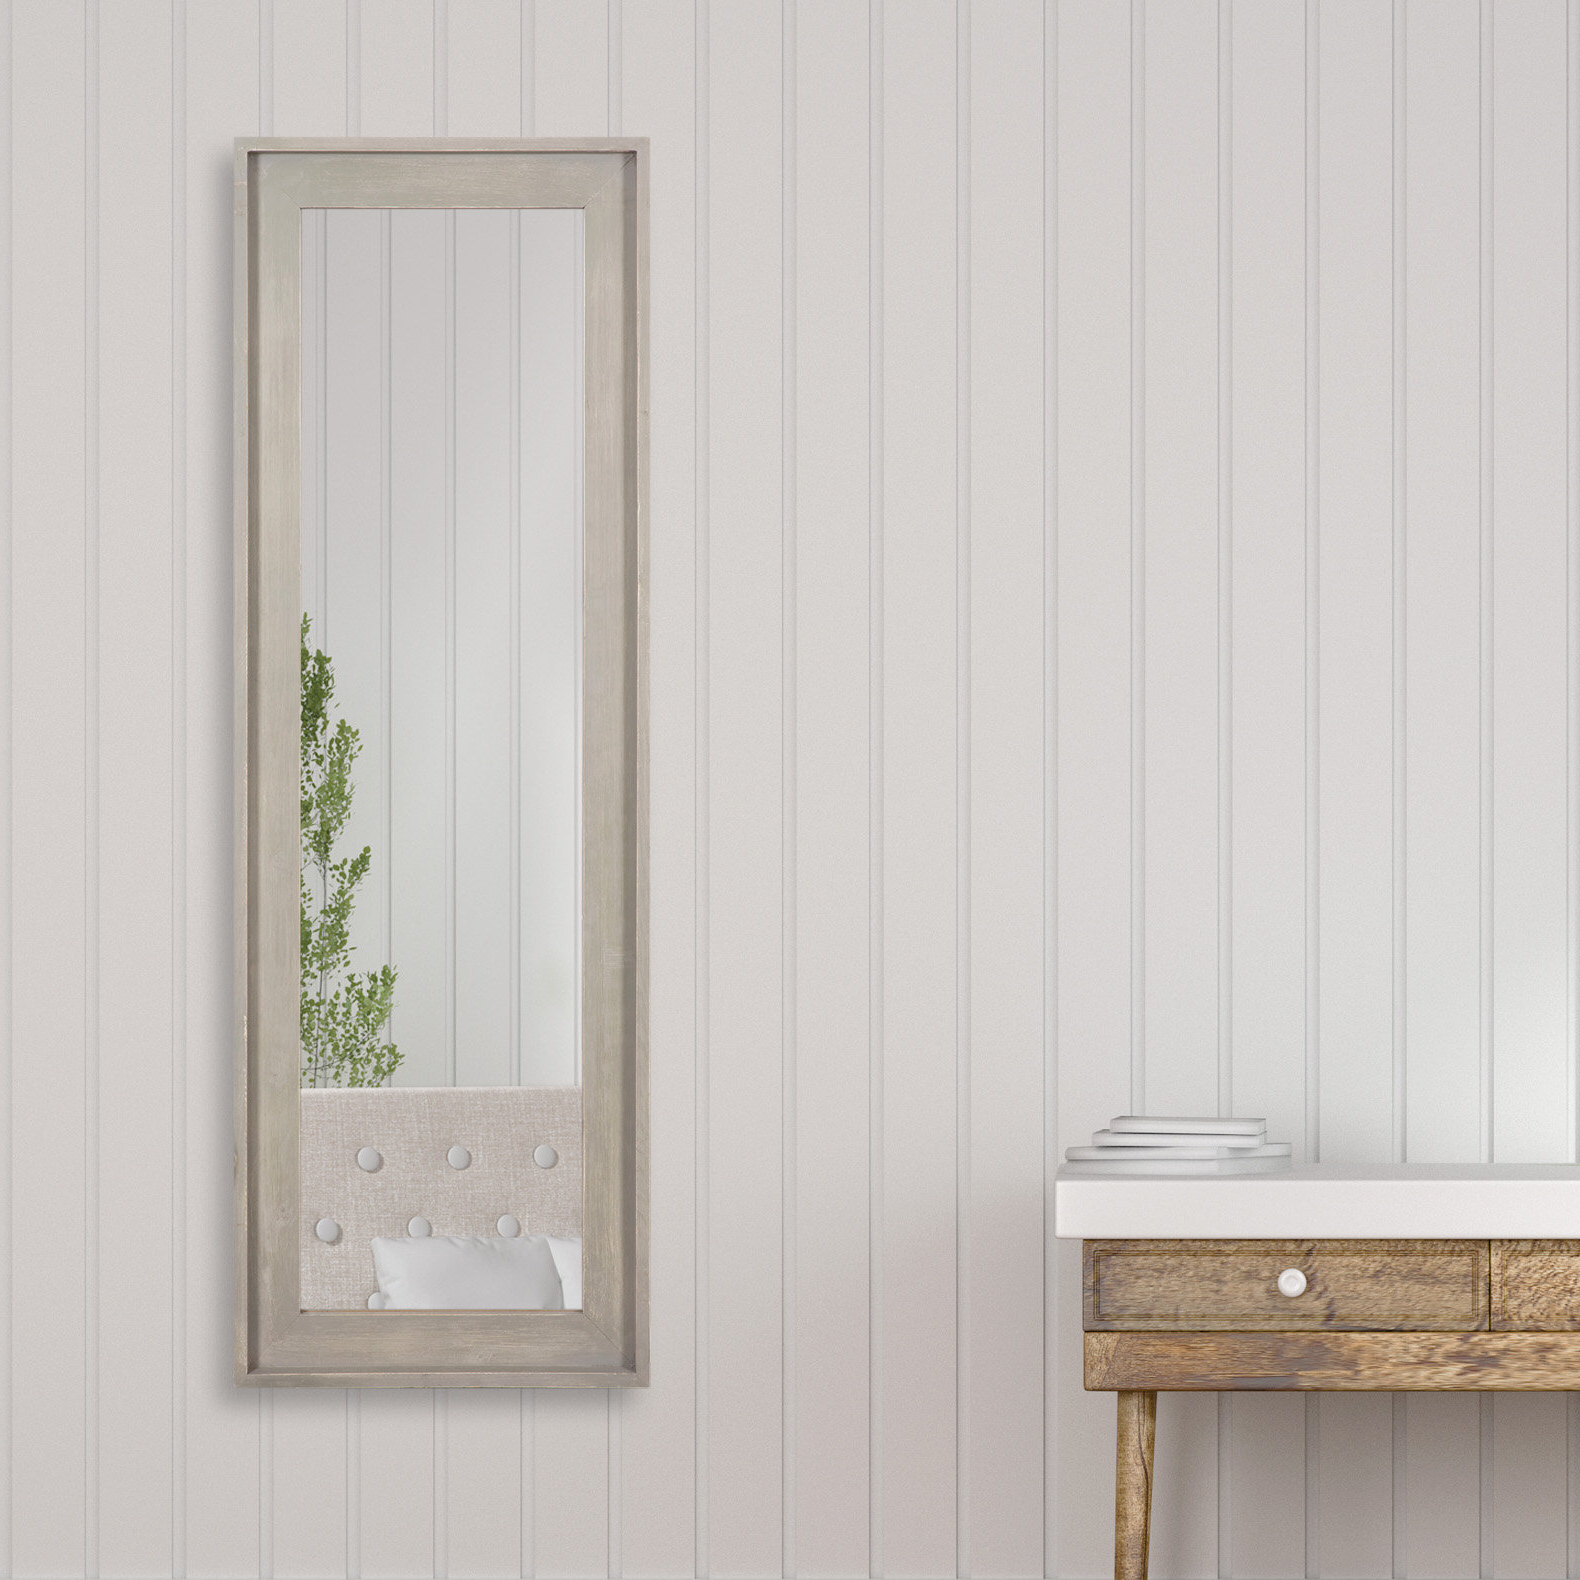 Padang Irregular Wood Framed Wall Mirrors Regarding 2019 Natural Wood Frame Mirror (View 8 of 20)